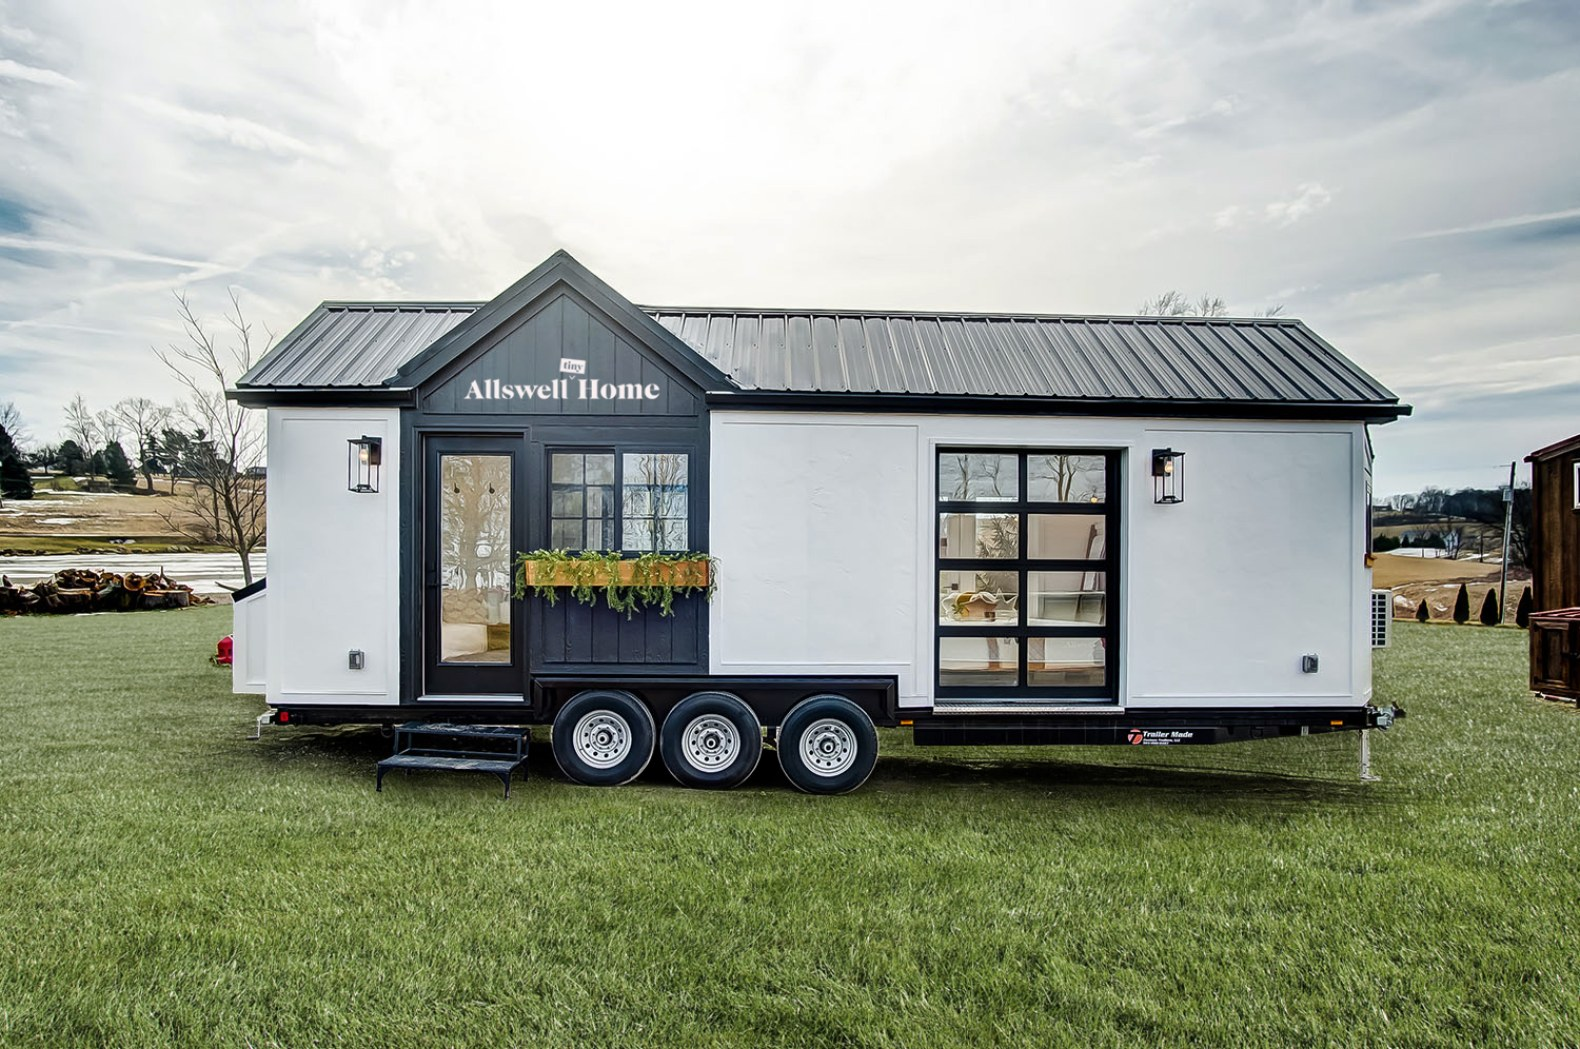 Walmart's tiny home on wheels is embarking on a tour around the country